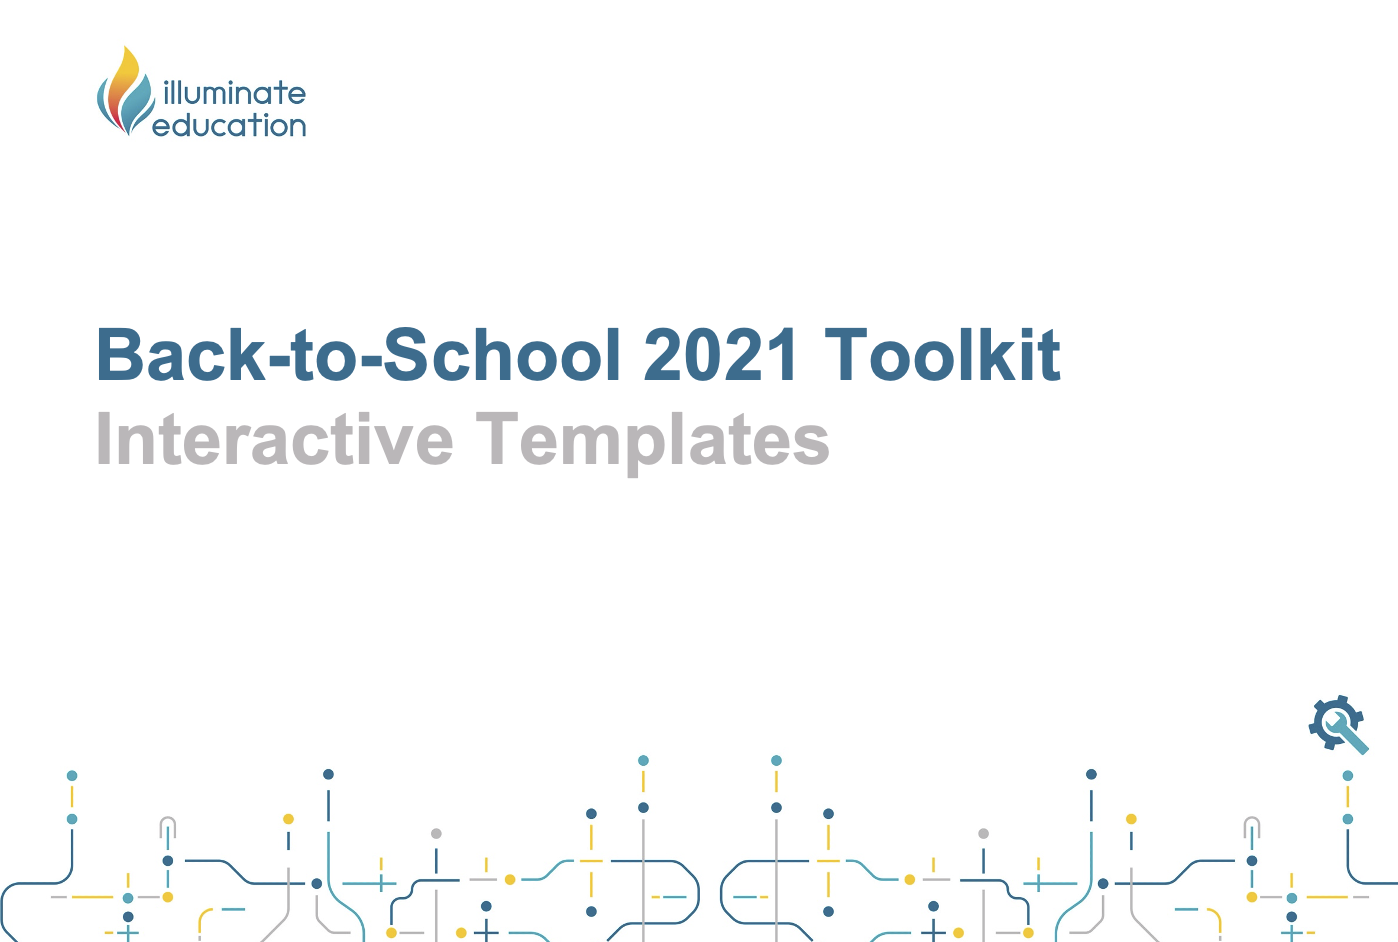 Back-to-School 2021 Toolkit Interactive Templates